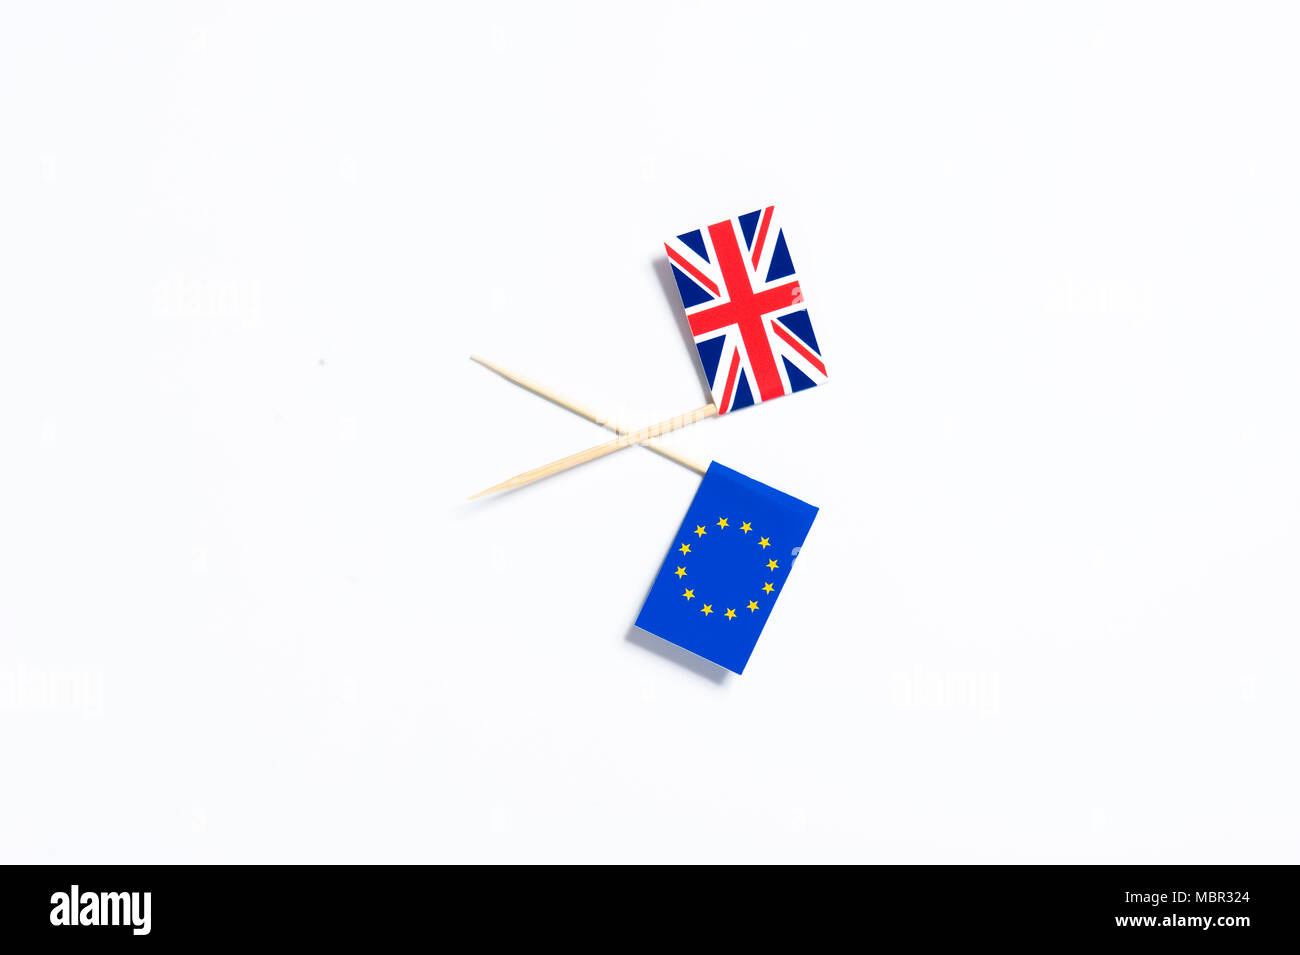 A Union Jack flag and a European Union flag on a white background - Stock Image